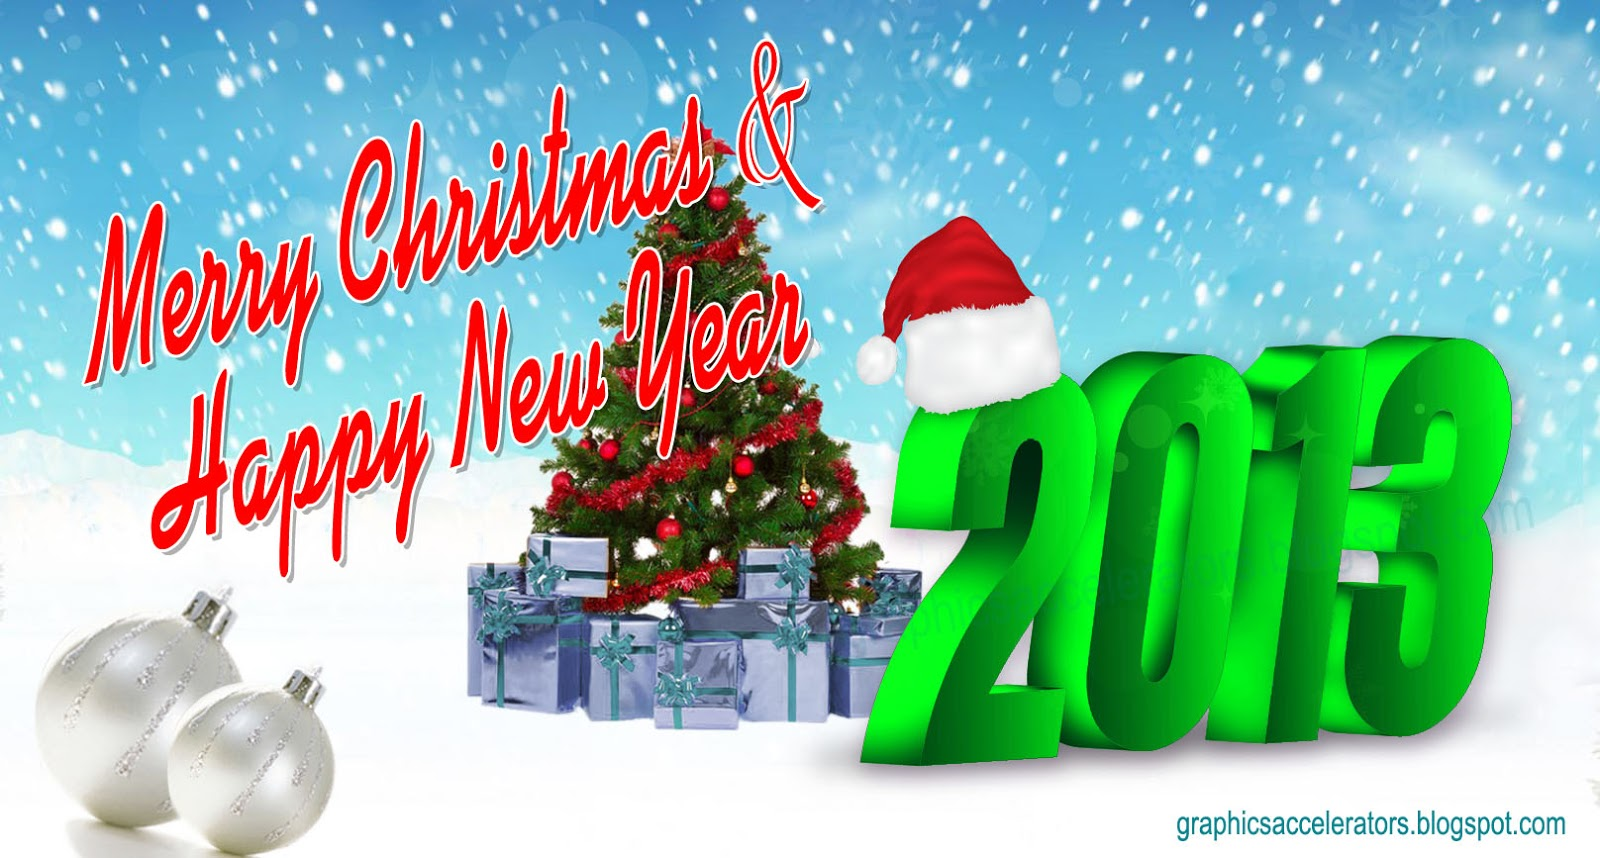 http://1.bp.blogspot.com/-pT8m-crT7GM/UMtoR4fmtSI/AAAAAAAAGNc/LUT_dH_iT2g/s1600/Merry+Christmas+and+Happy+New+Year+2013.jpg